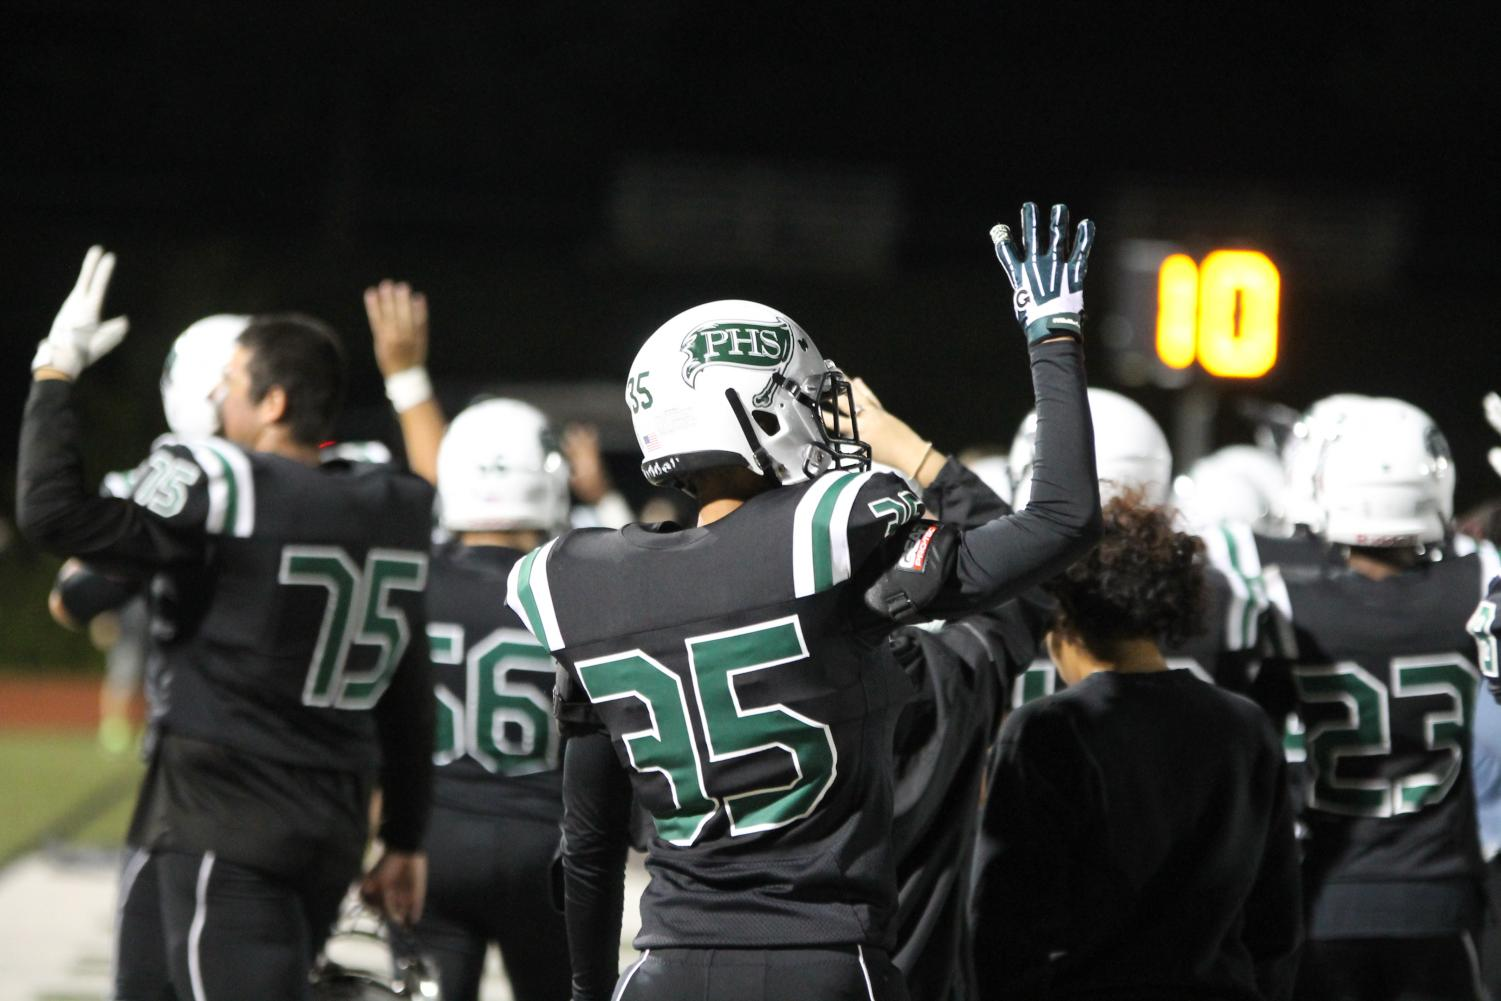 Jacob Whittinghill (35) is playing in his fourth season of football with Pattonville High School. He holds up four fingers as the Pirates start the 4th quarter against Kirkwood on Sept. 21.